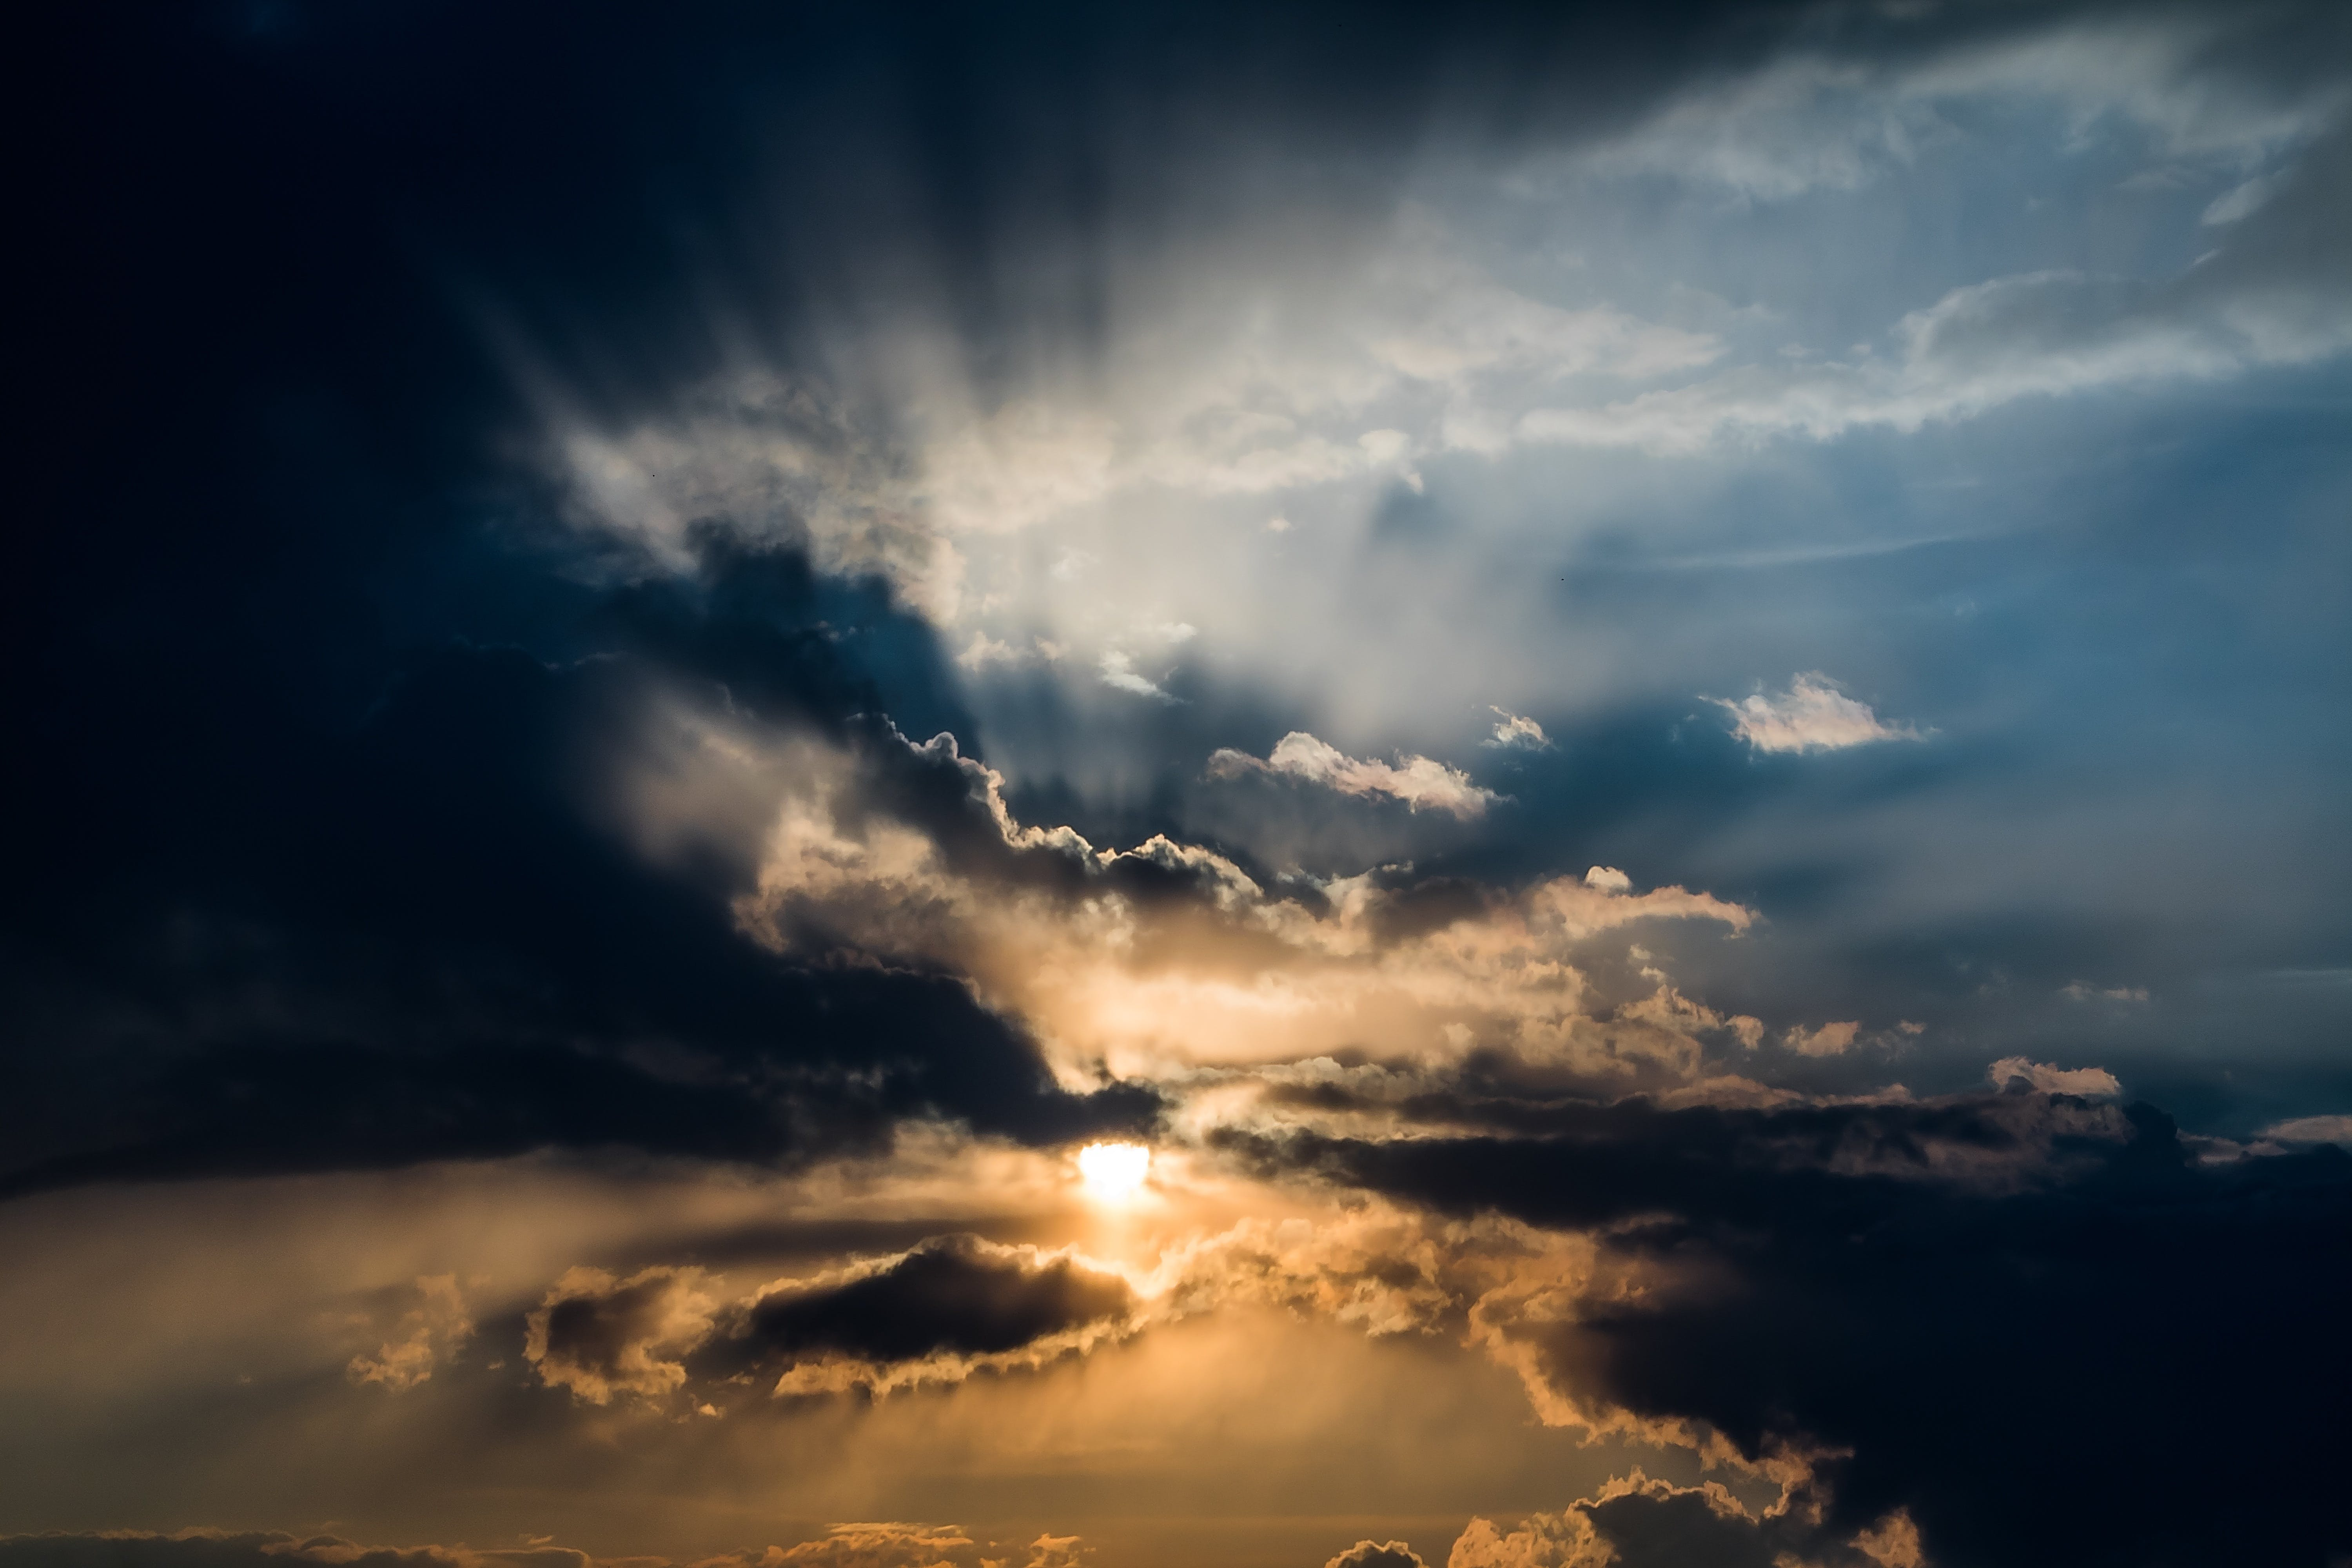 afterglow, cloudiness, clouds